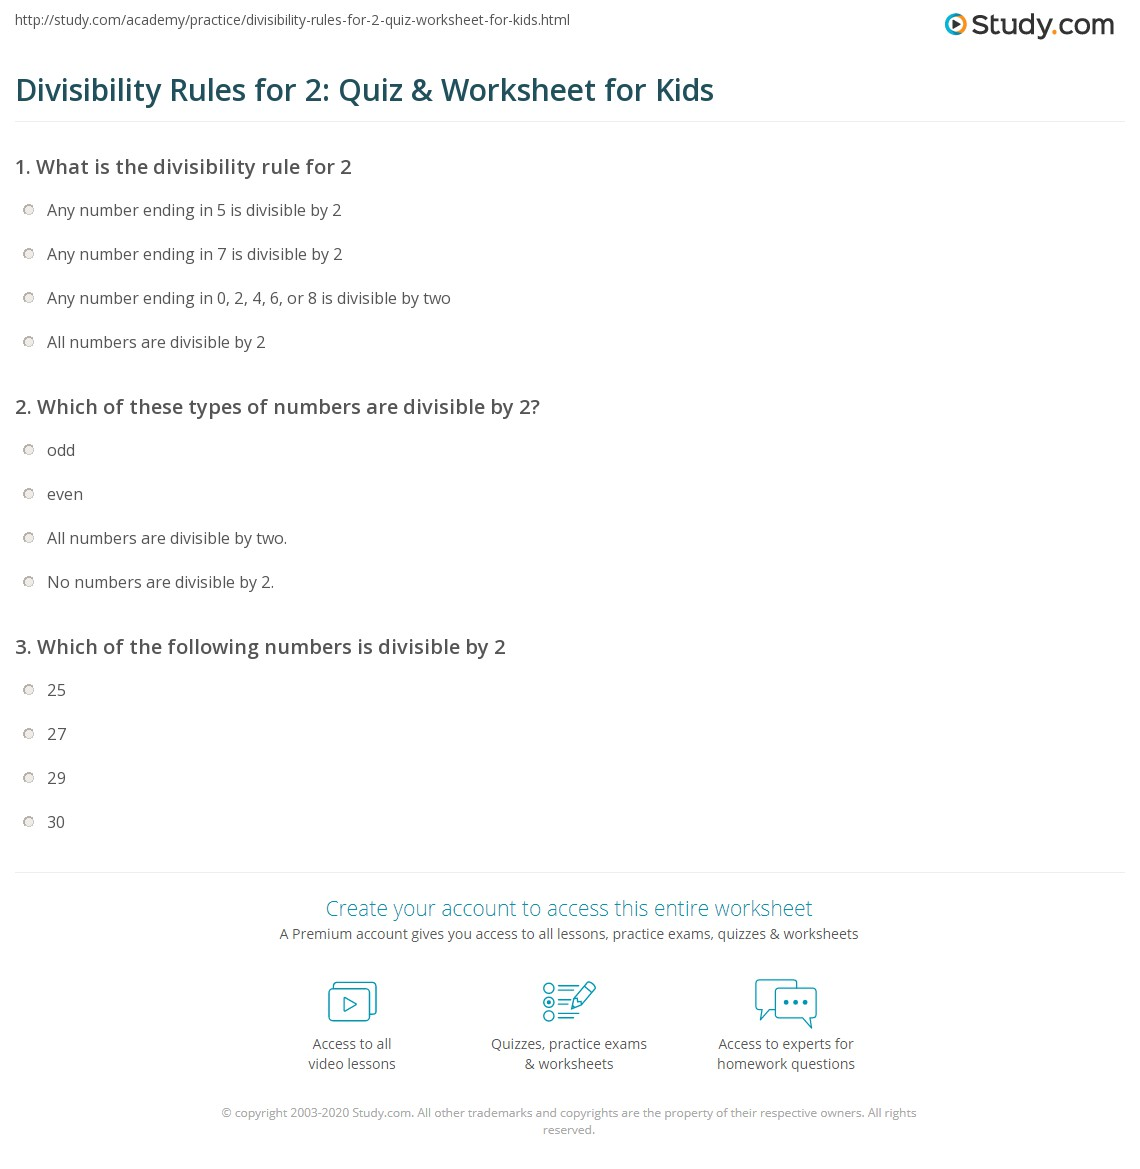 Divisibility Rules 2 Quiz W Ksheet Kids Study